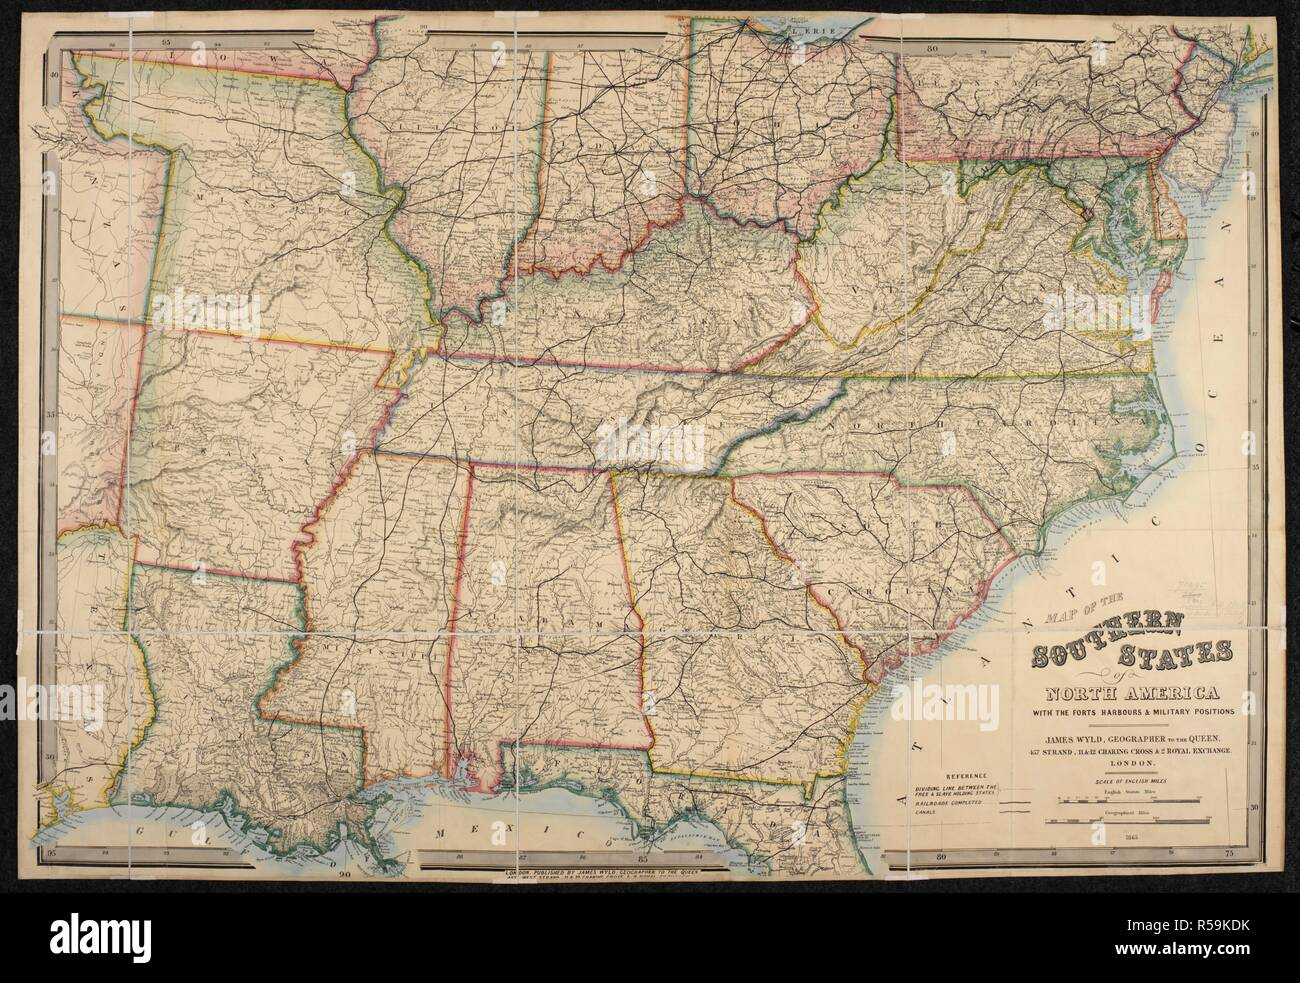 Map Of North America 19th Century Stock Photos & Map Of ...  Map Of Florida Showing Forts on 1880 colorado map, 1880 new york map, 1880 missouri map, 1880 ohio map, 1880 wisconsin map, 1880 kansas map, 1880 mexico map, 1880 arizona map, 1880 michigan map, 1880 kentucky map, 1880 europe map, 1880 texas map, 1880 nebraska map, 1880 dallas map, 1880 oklahoma map, 1880 idaho map, 1880 south dakota map, 1880 denver map, 1880 louisiana map, 1880 world map,